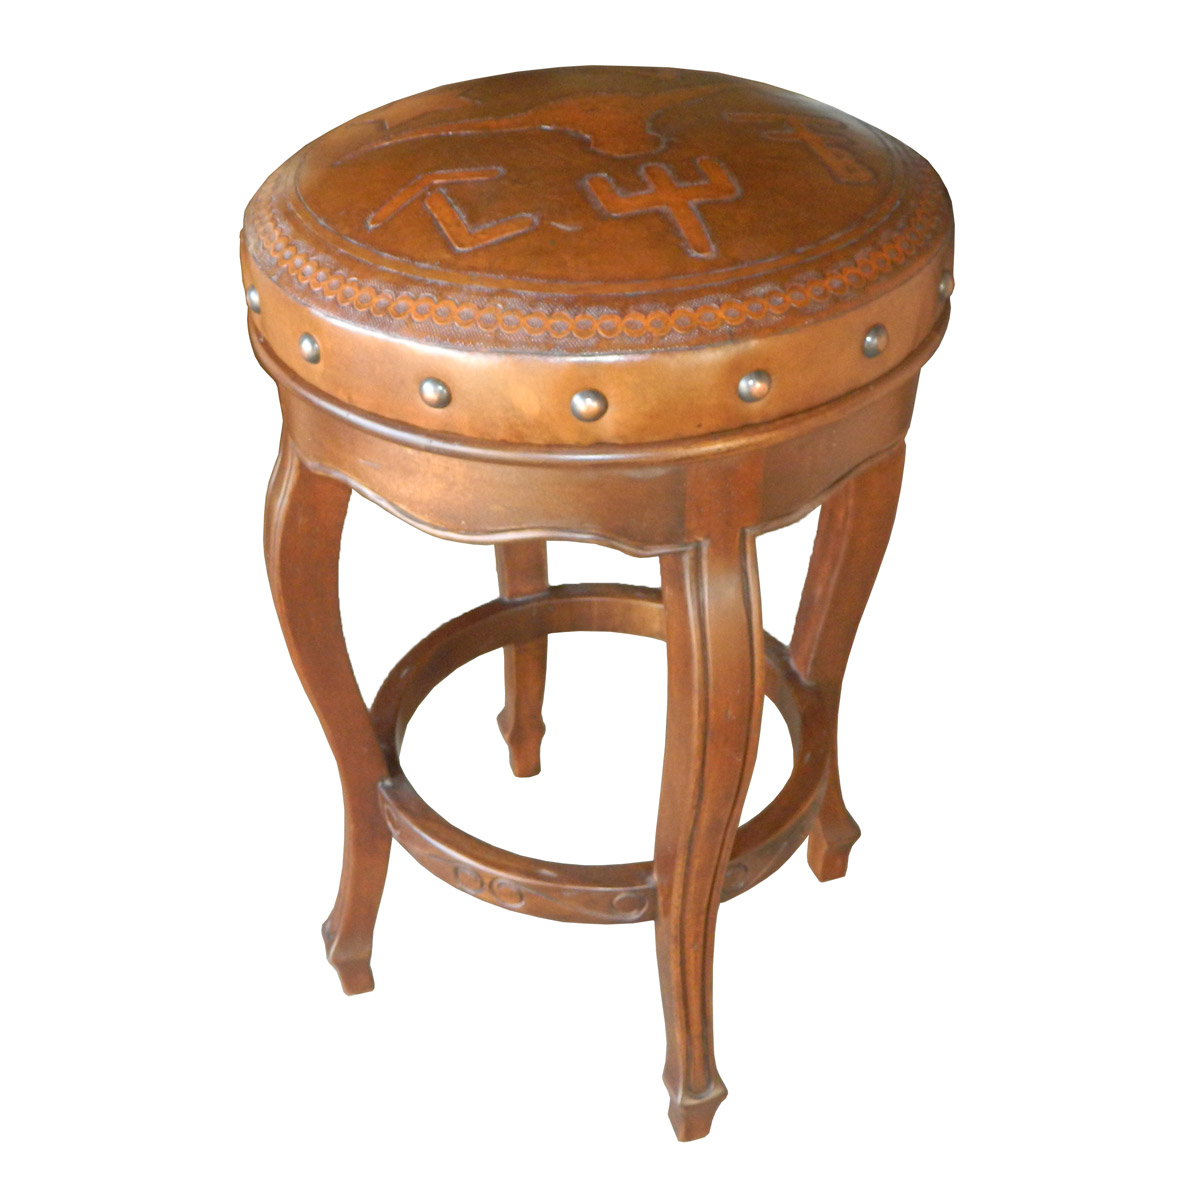 Spanish Heritage Round Counter Stool - Set of 3